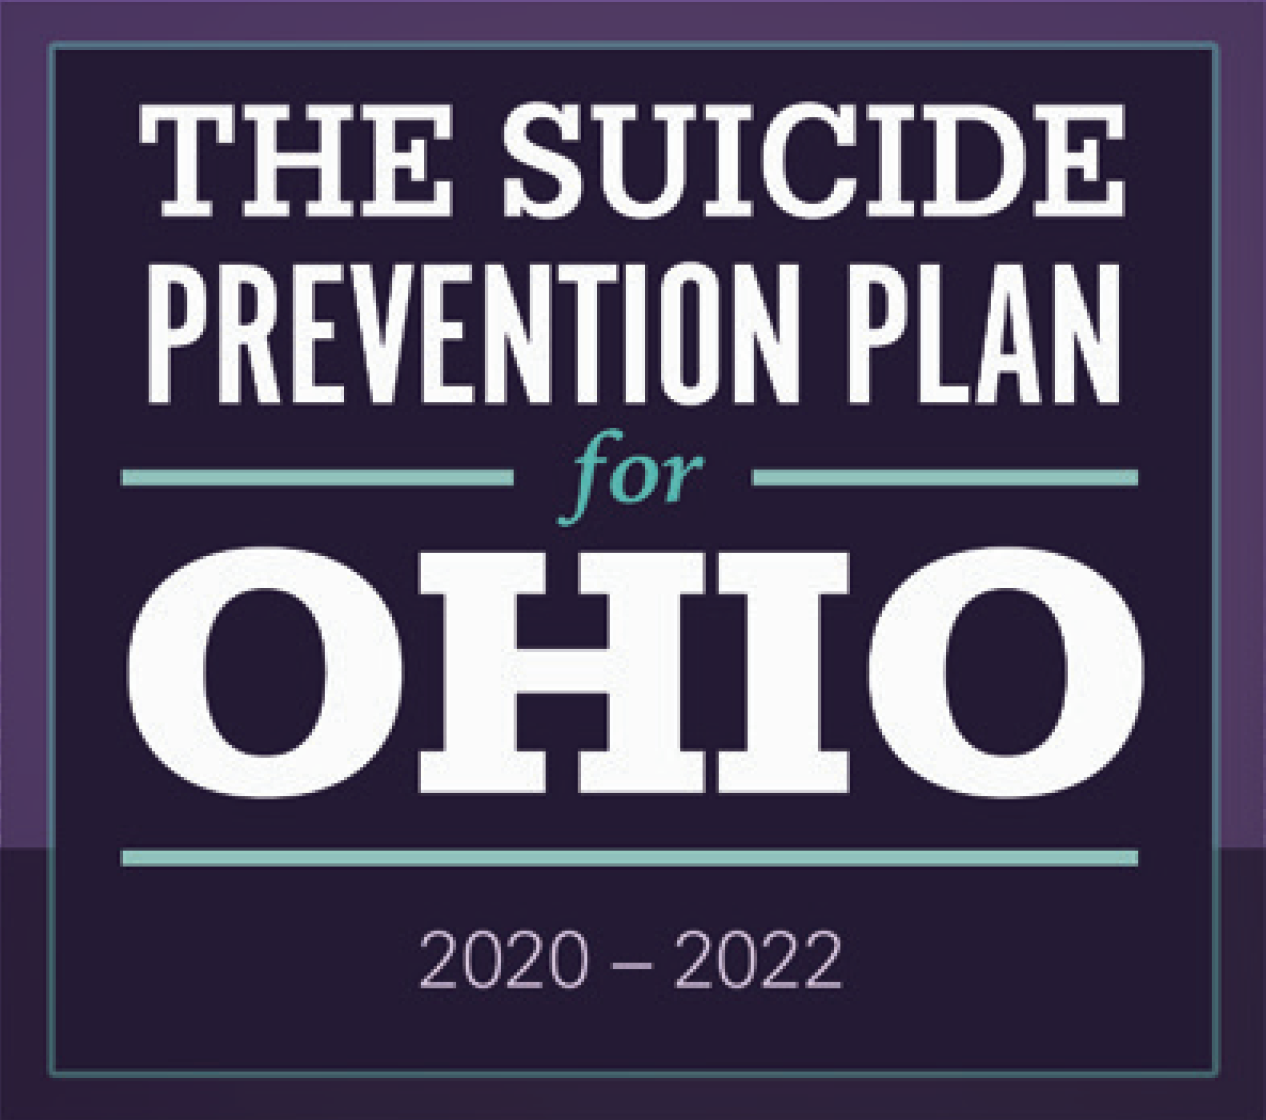 OMHAS Releases 2021-2022 Suicide Prevention Plan